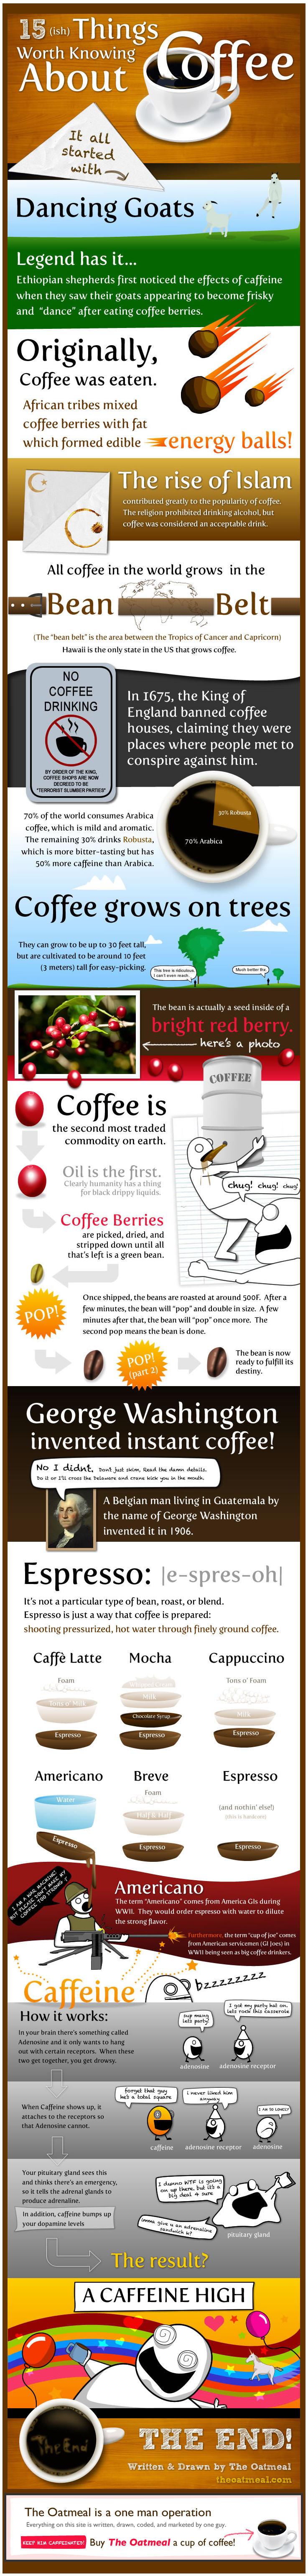 Coffeefacts